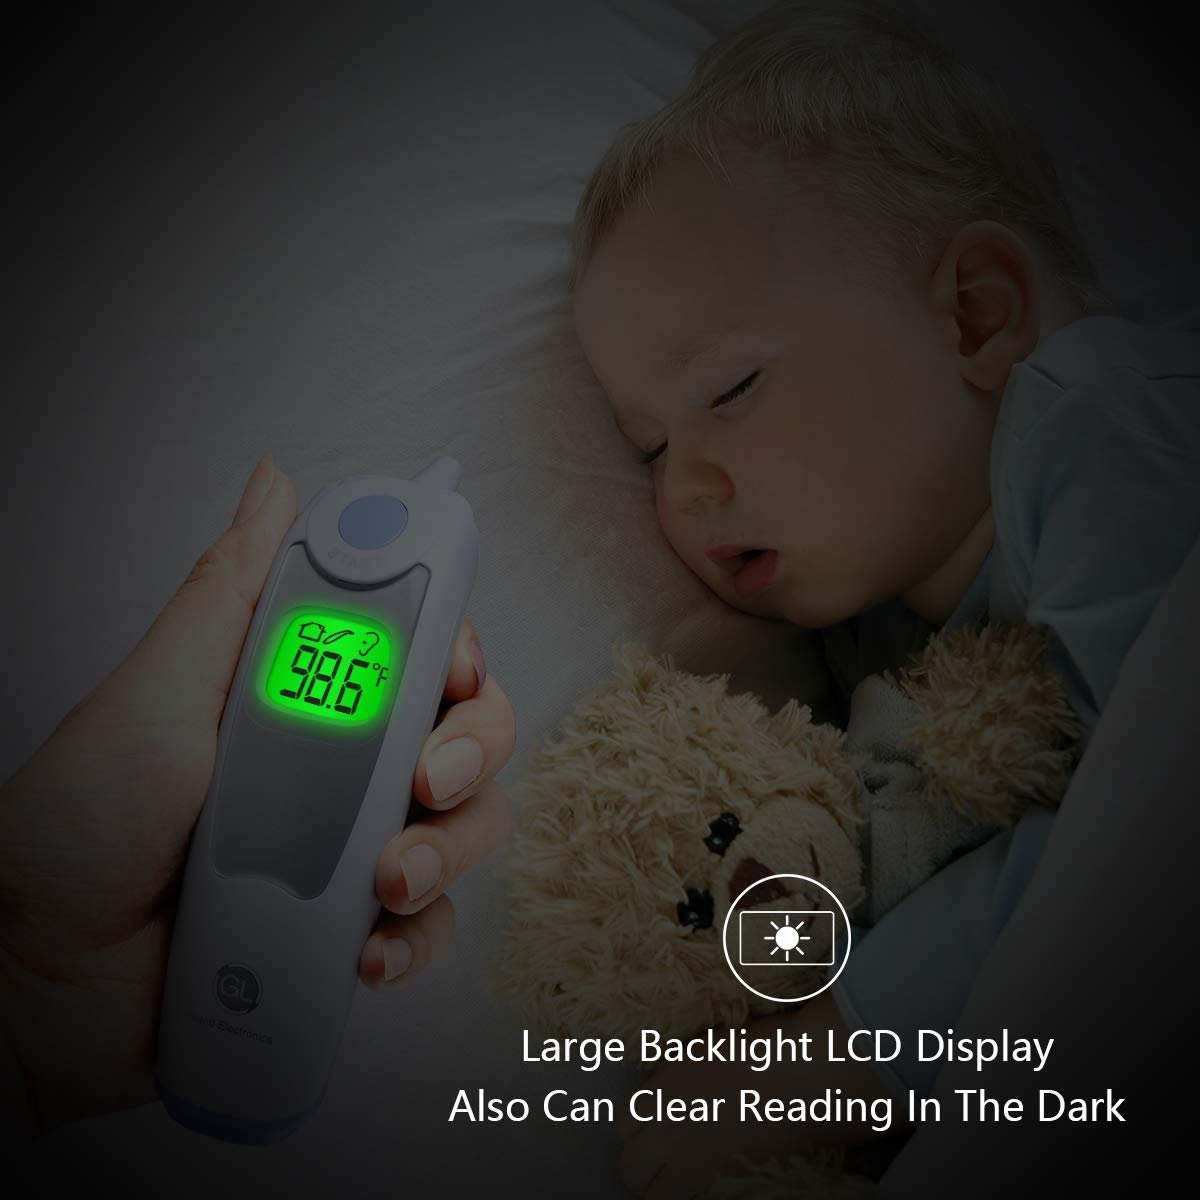 Baby Ear Thermometer for Fever Gland Medical Digital Ear Thermometer for Baby, Infants,Toddlers, and Adults FDA Approved by GL Gland Electronics (Image #5)